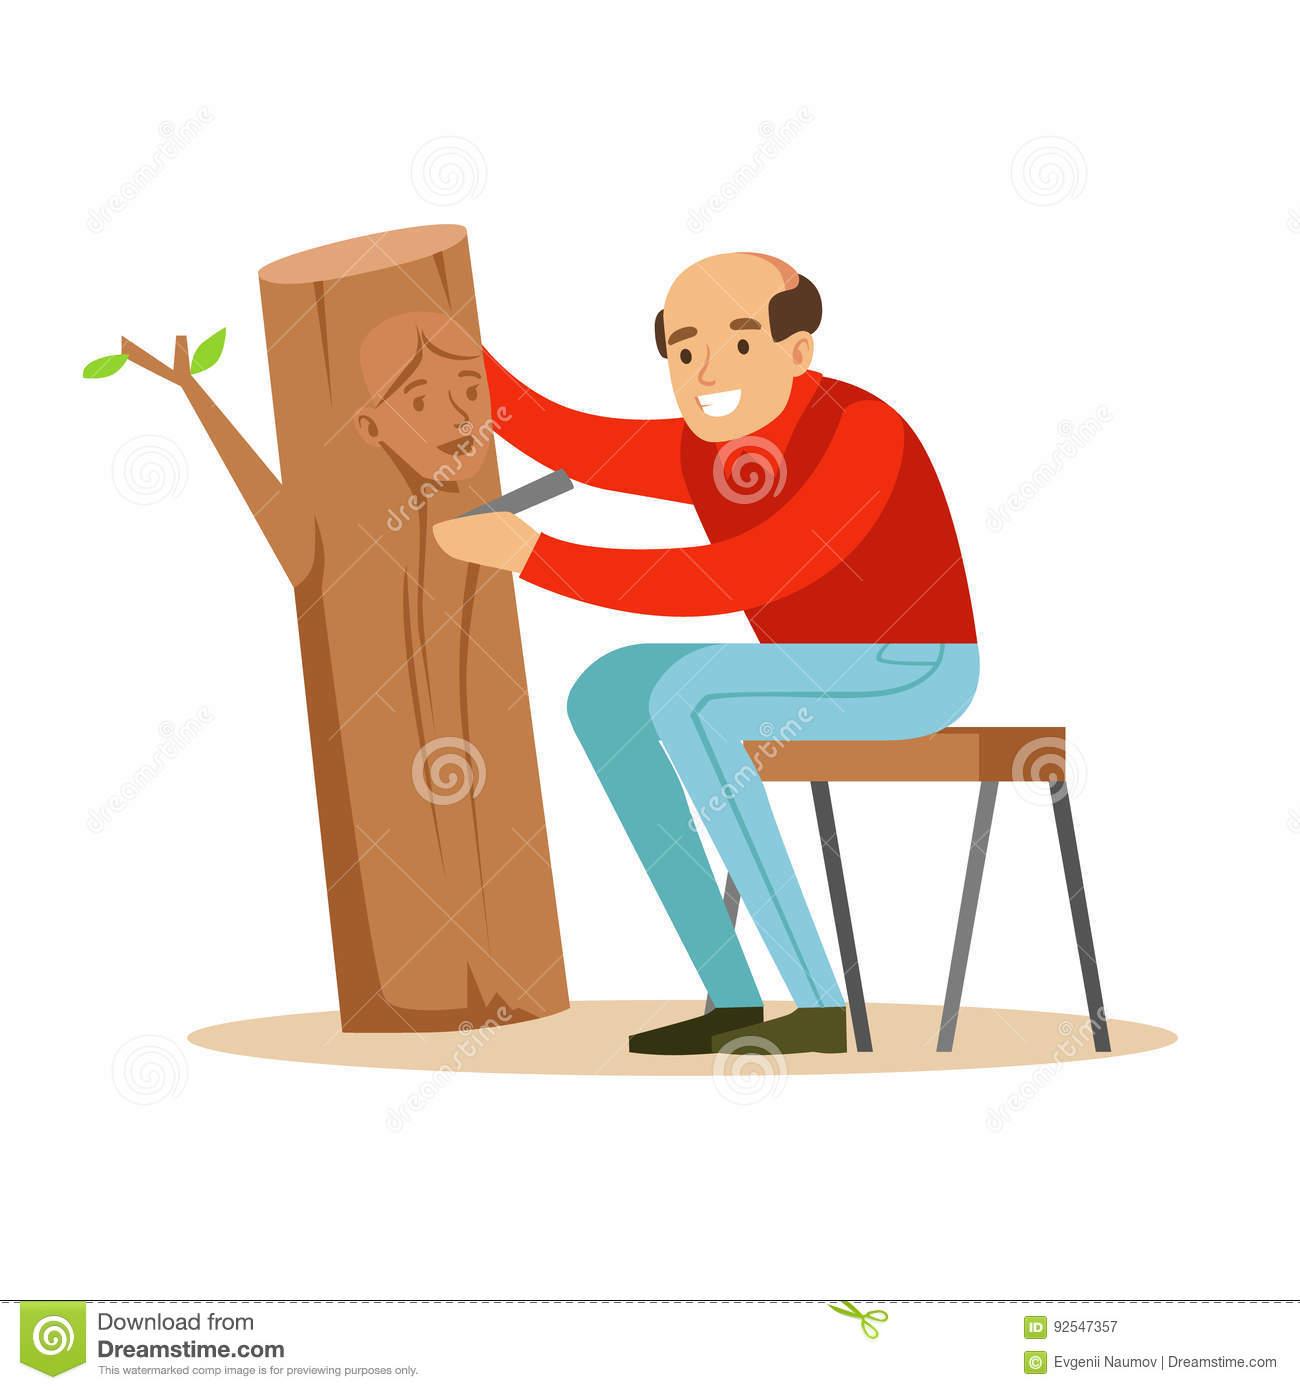 Woodcutter cartoons illustrations vector stock images for Craft hobbies for women